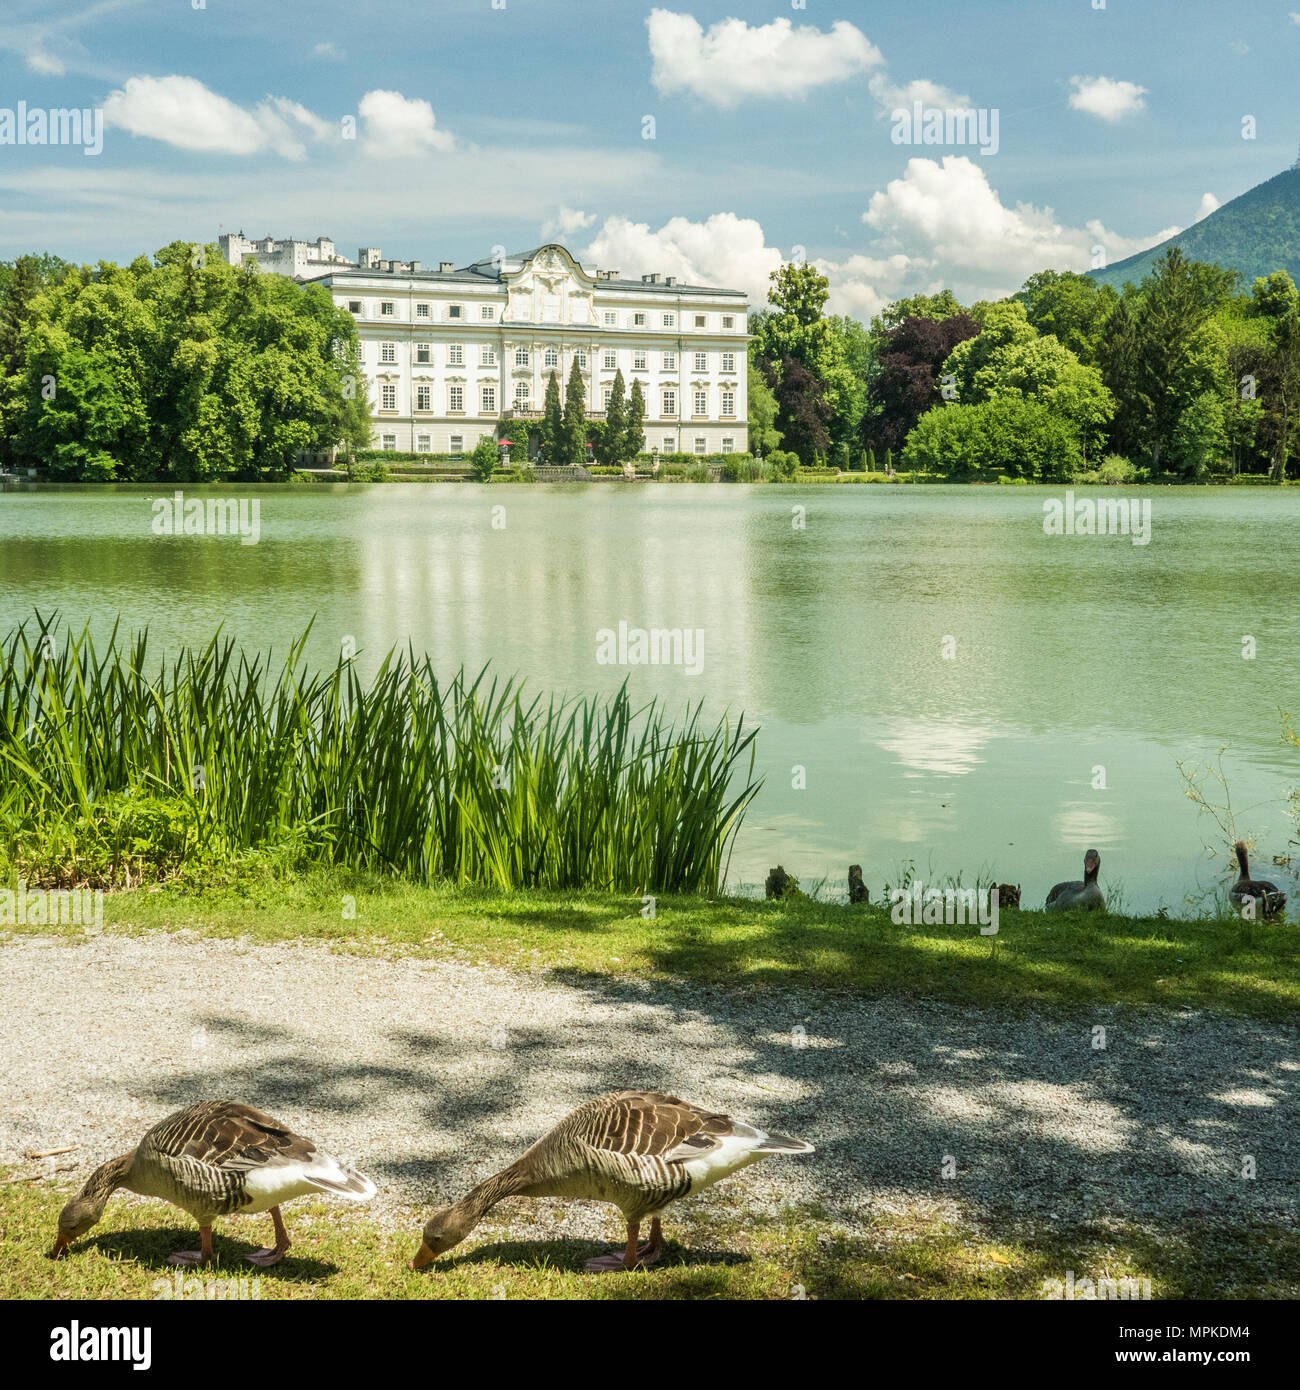 The rococo styled 'Leopoldskron Palace', Salzburg, Austria. Location for the lake shots in the musical film 'The Sound of Music' - Stock Image